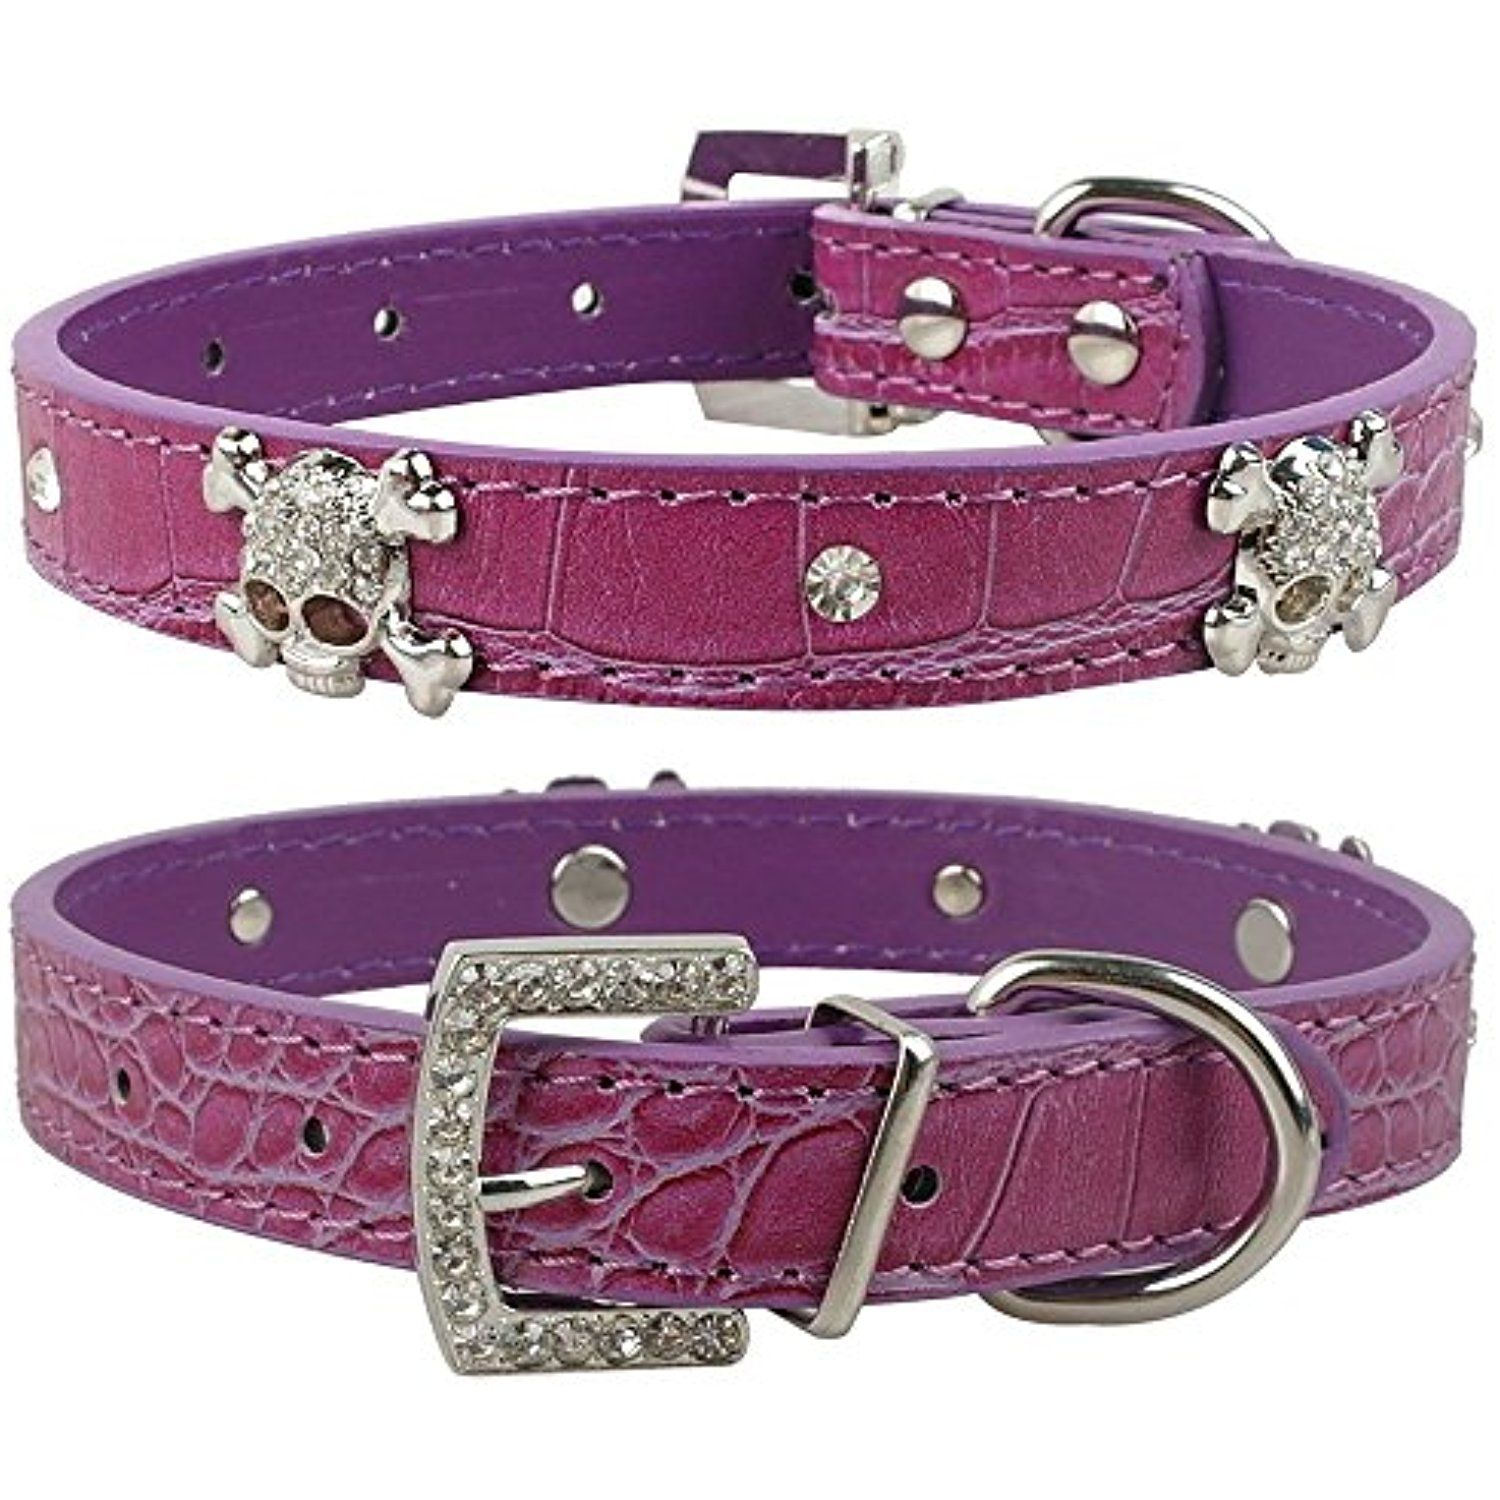 Dogs Kingdom Soft Leather Luxury Crystal Rhinestone Skull